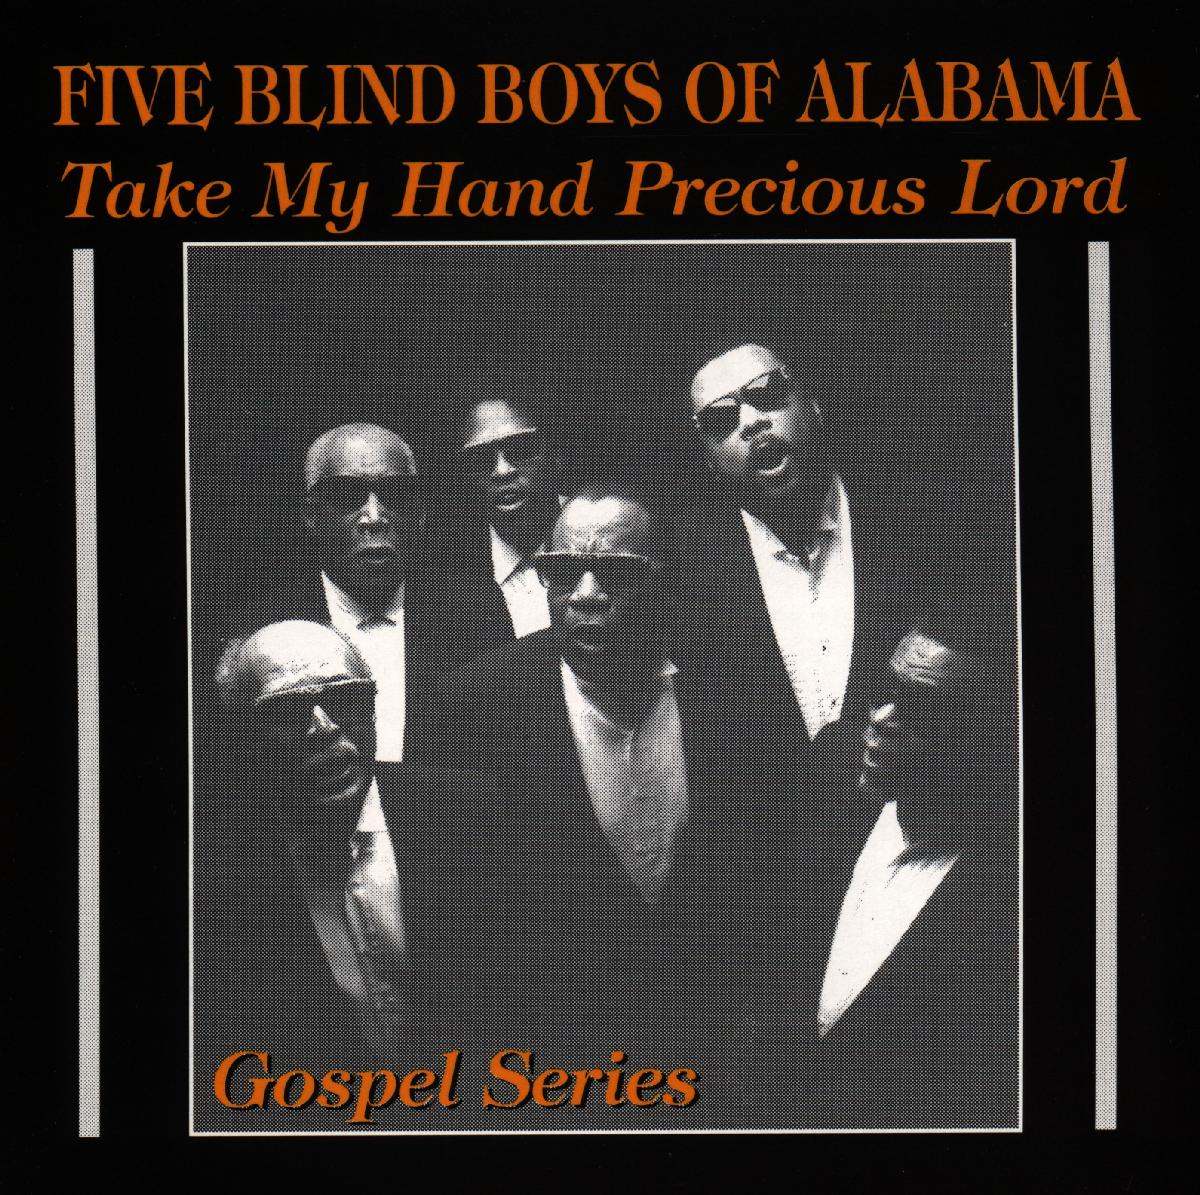 Take My Hand Precious Lord - Five Blind Boys of Alabama - Musik - AIM RECORDS - 0752211800121 - March 27, 2020